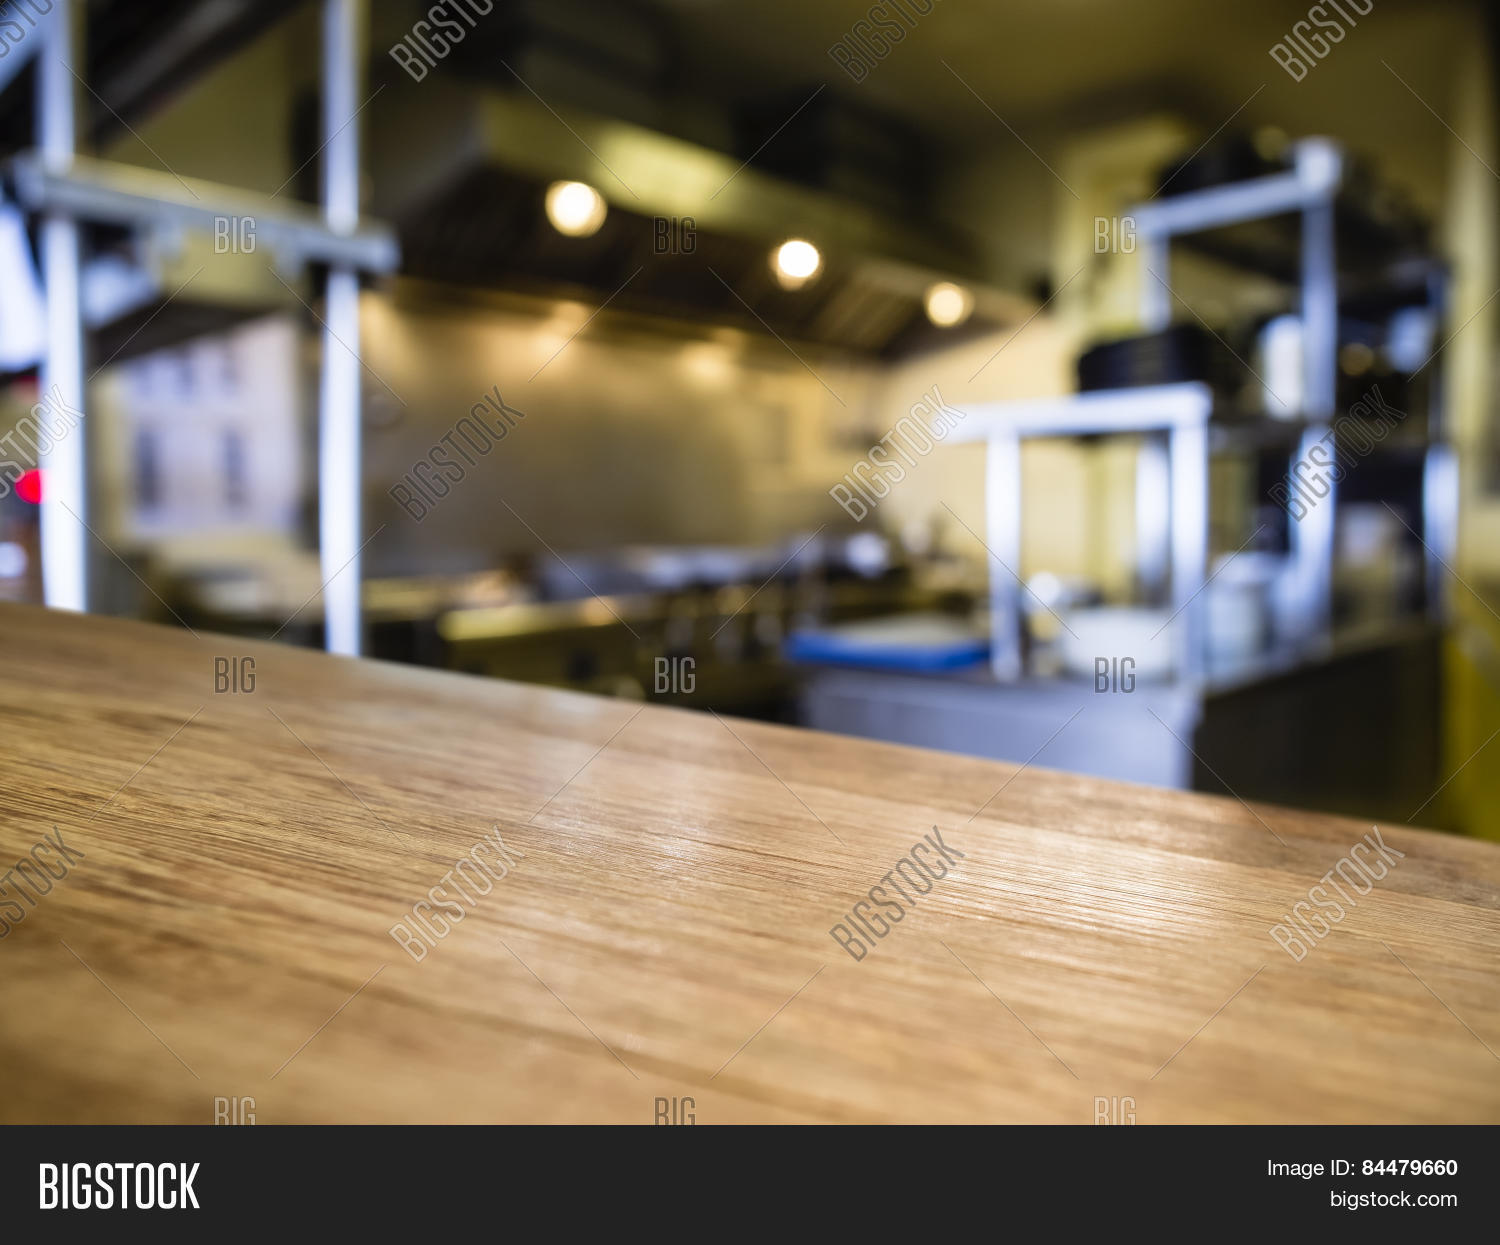 Top Wooden Table Counter Blurred Image & Photo | Bigstock